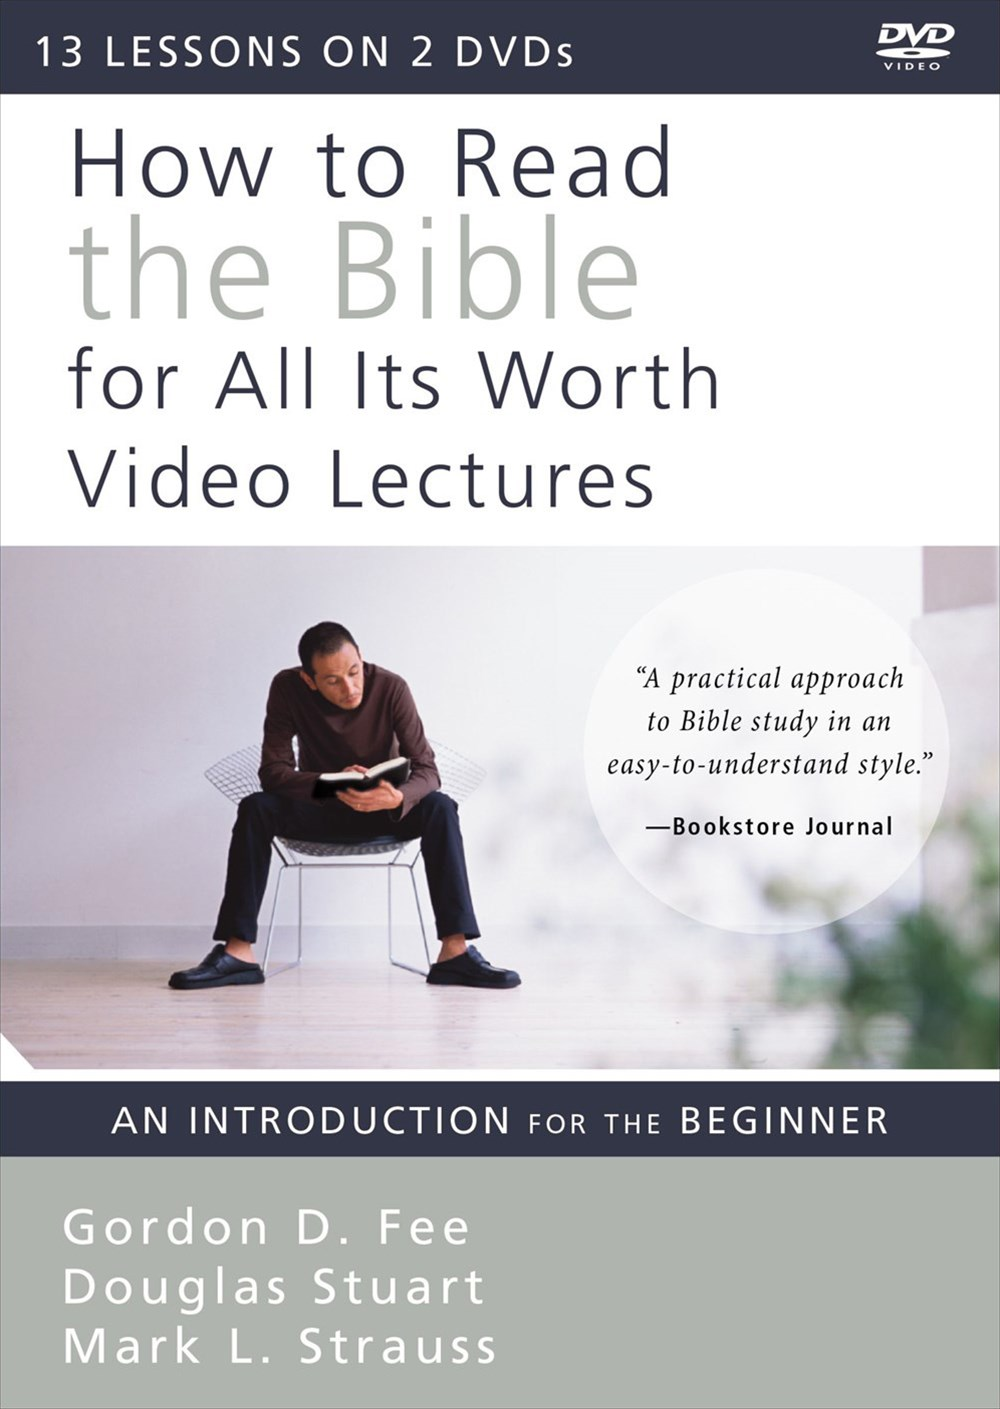 How To Read The Bible For All Its Worth Video Lectures: An Introduction For The Beginner